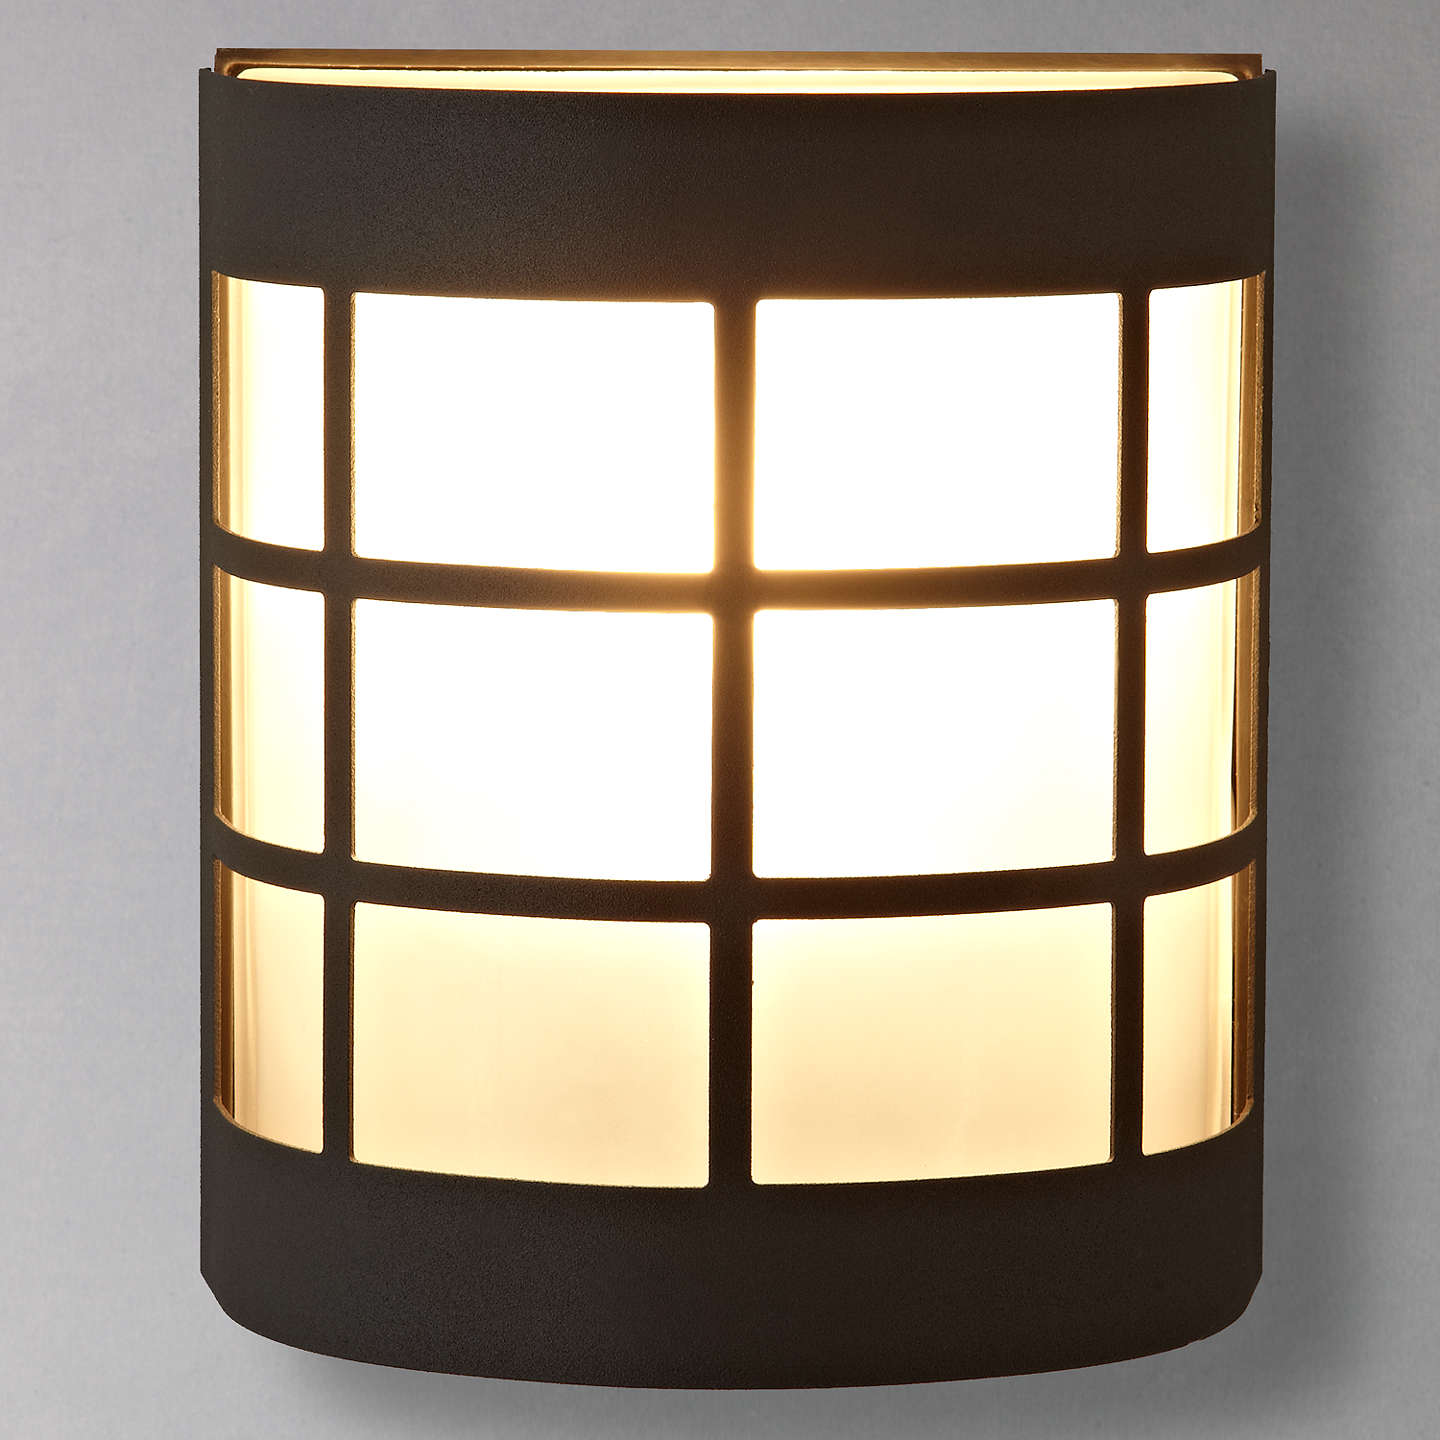 Porch Light John Lewis: John Lewis Classic Canterbury Wall Light, Black At John Lewis